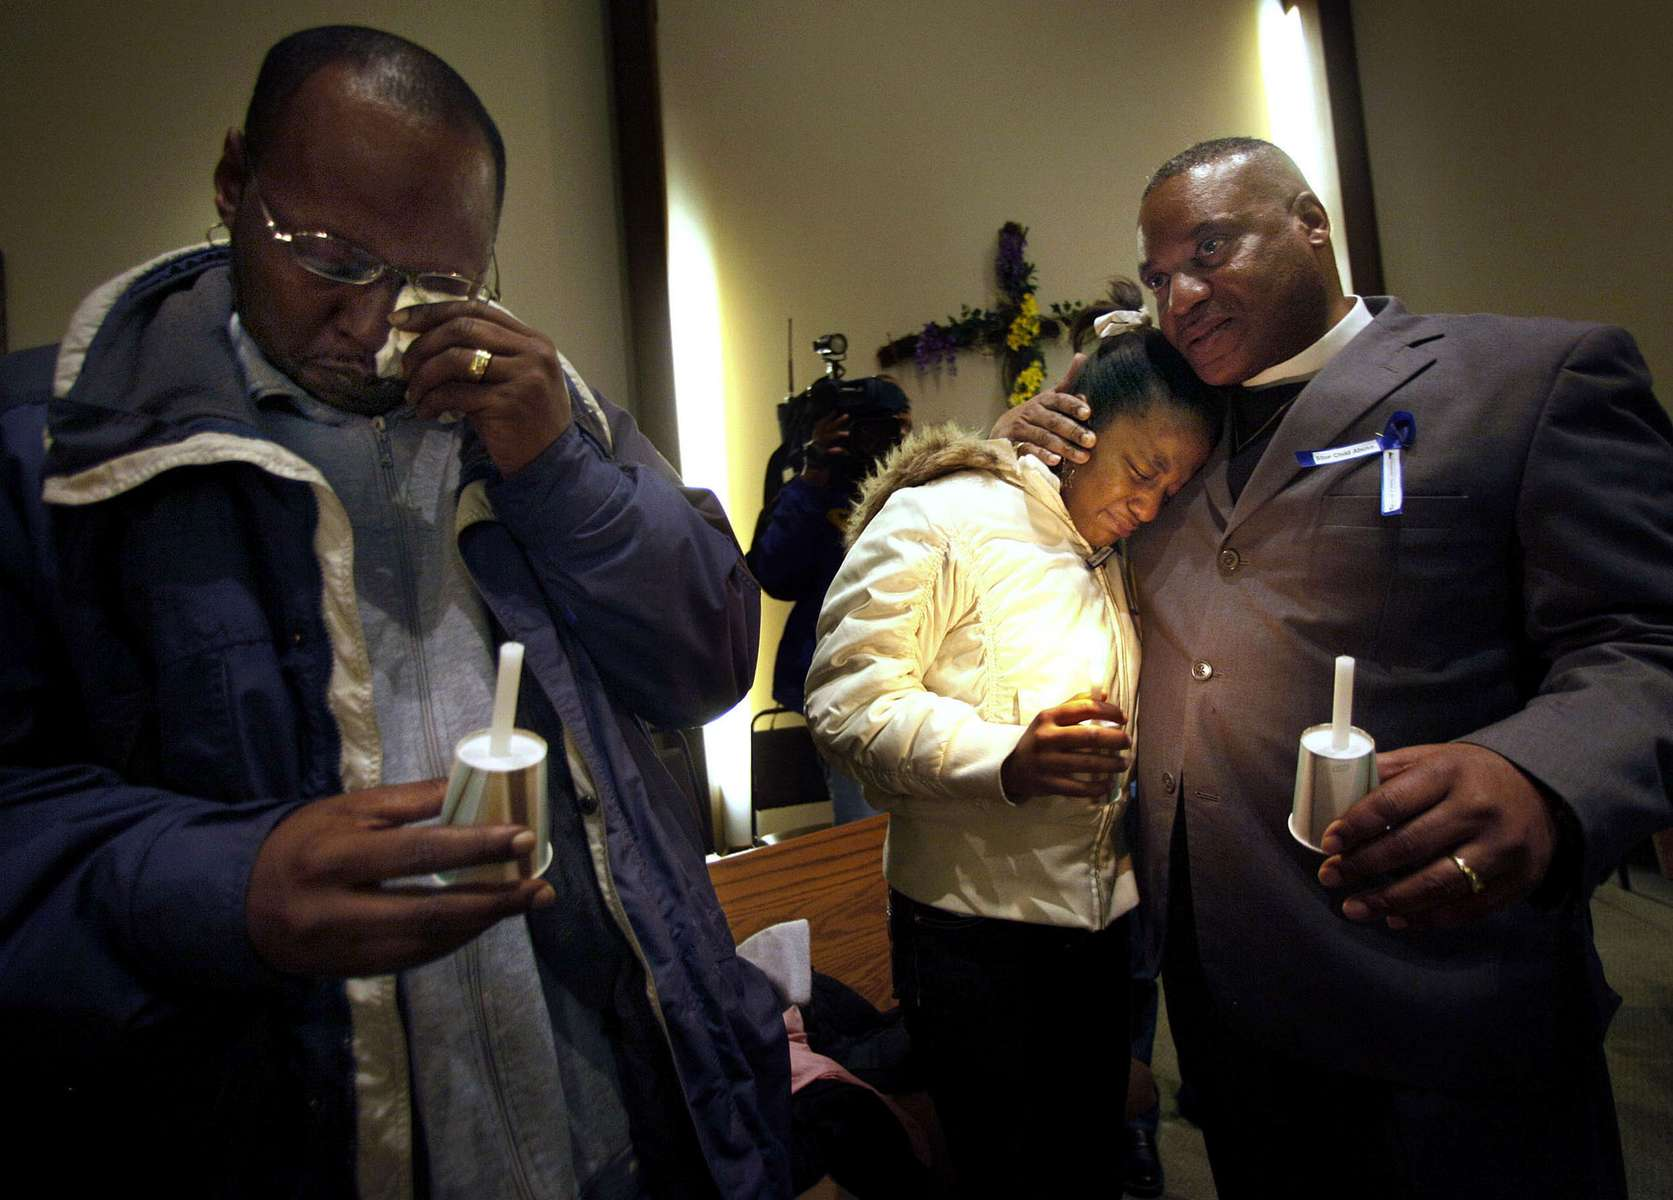 Kenny McClellan, grandfather to 13-month-old Christopher Thomas, Jr., (left) wipes his tears as his daughter Shantrina Freeman, 12, (center) is comforted by minister Gregory Lewis, (right) following a candlelight vigil held for Christopher Thomas, Jr. The toddler was placed in the home of his aunt Crystal Keith, by the Bureau of Milwaukee Child Welfare. Signs of violent child abuse were not recognized by the caseworker, and Thomas died of injuries after a severe beating by his aunt.